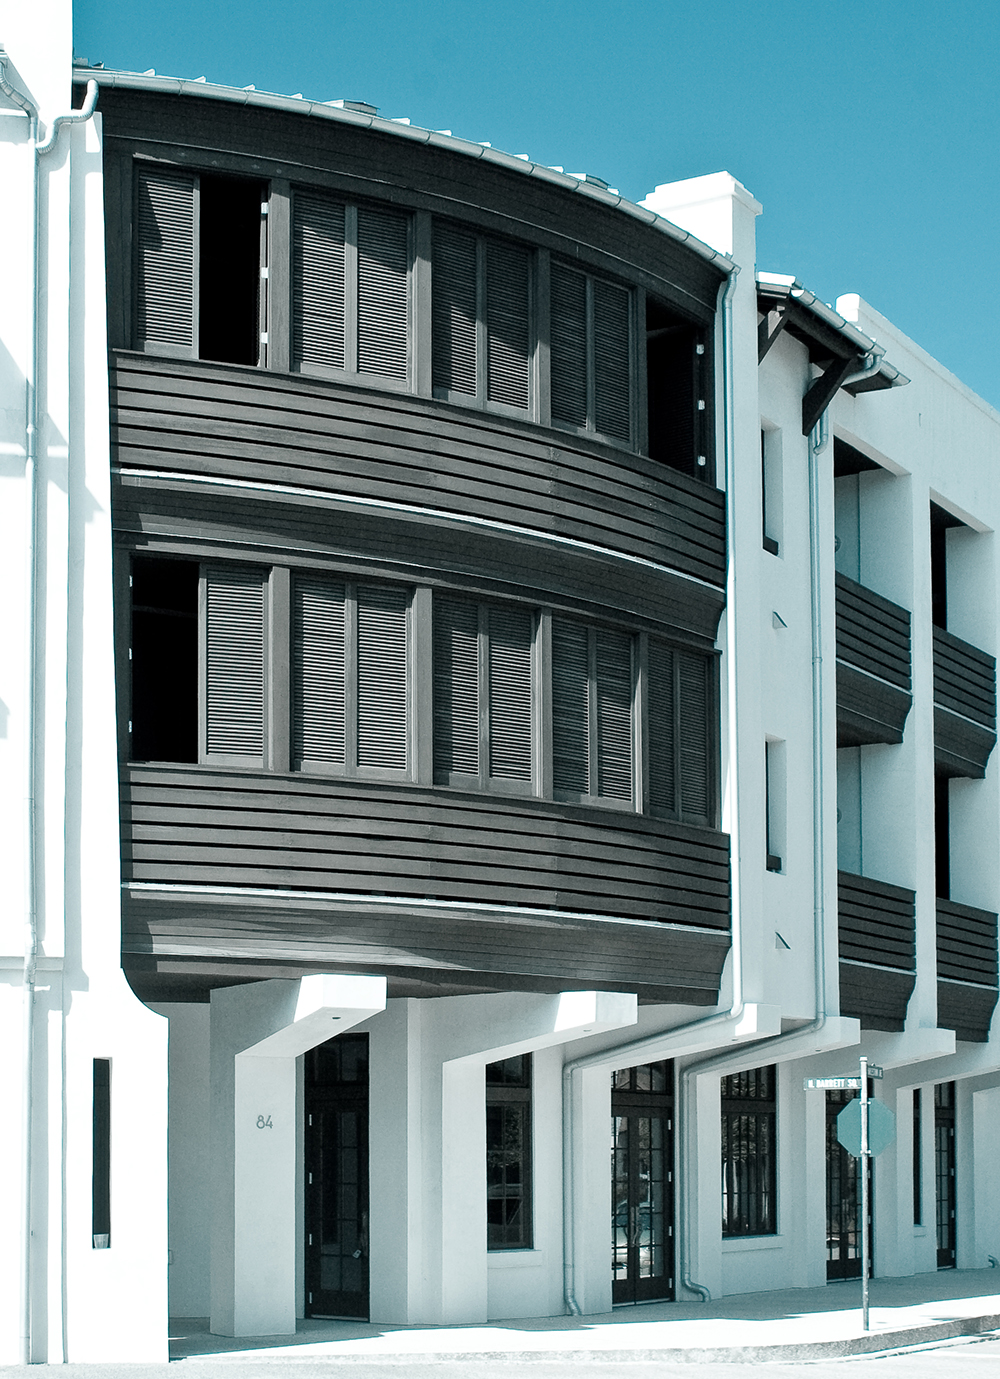 McNamara-Rosemary Beach-Tabby Lofts-Exterior-Shutters